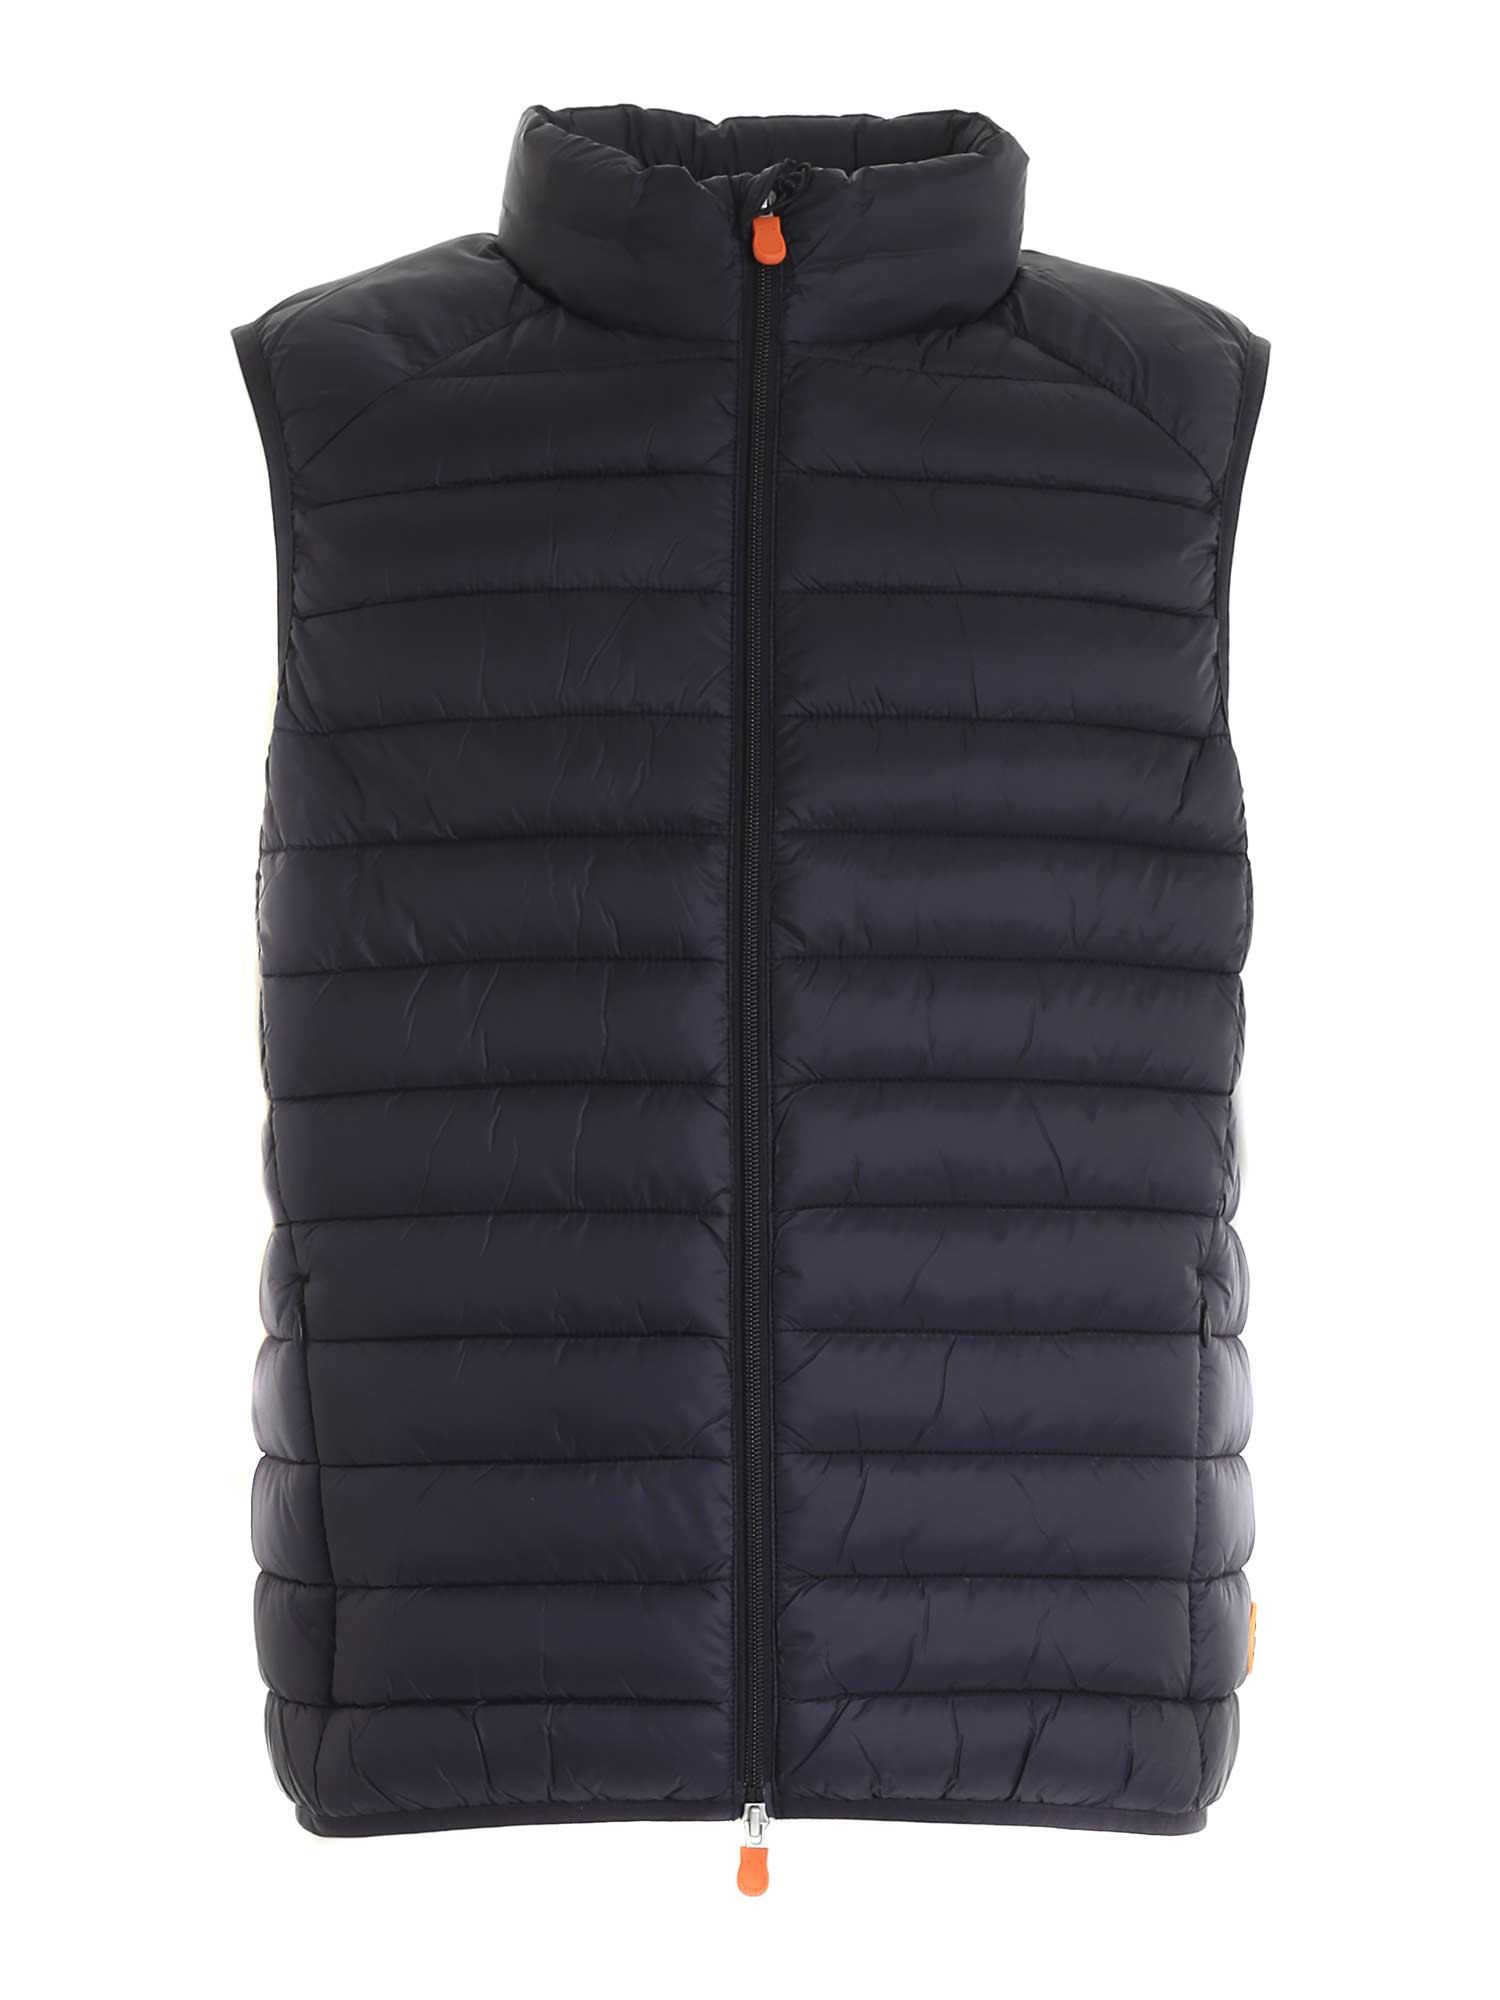 Save The Duck LOGO PATCH SLEEVELESS DOWN JACKET IN BLACK